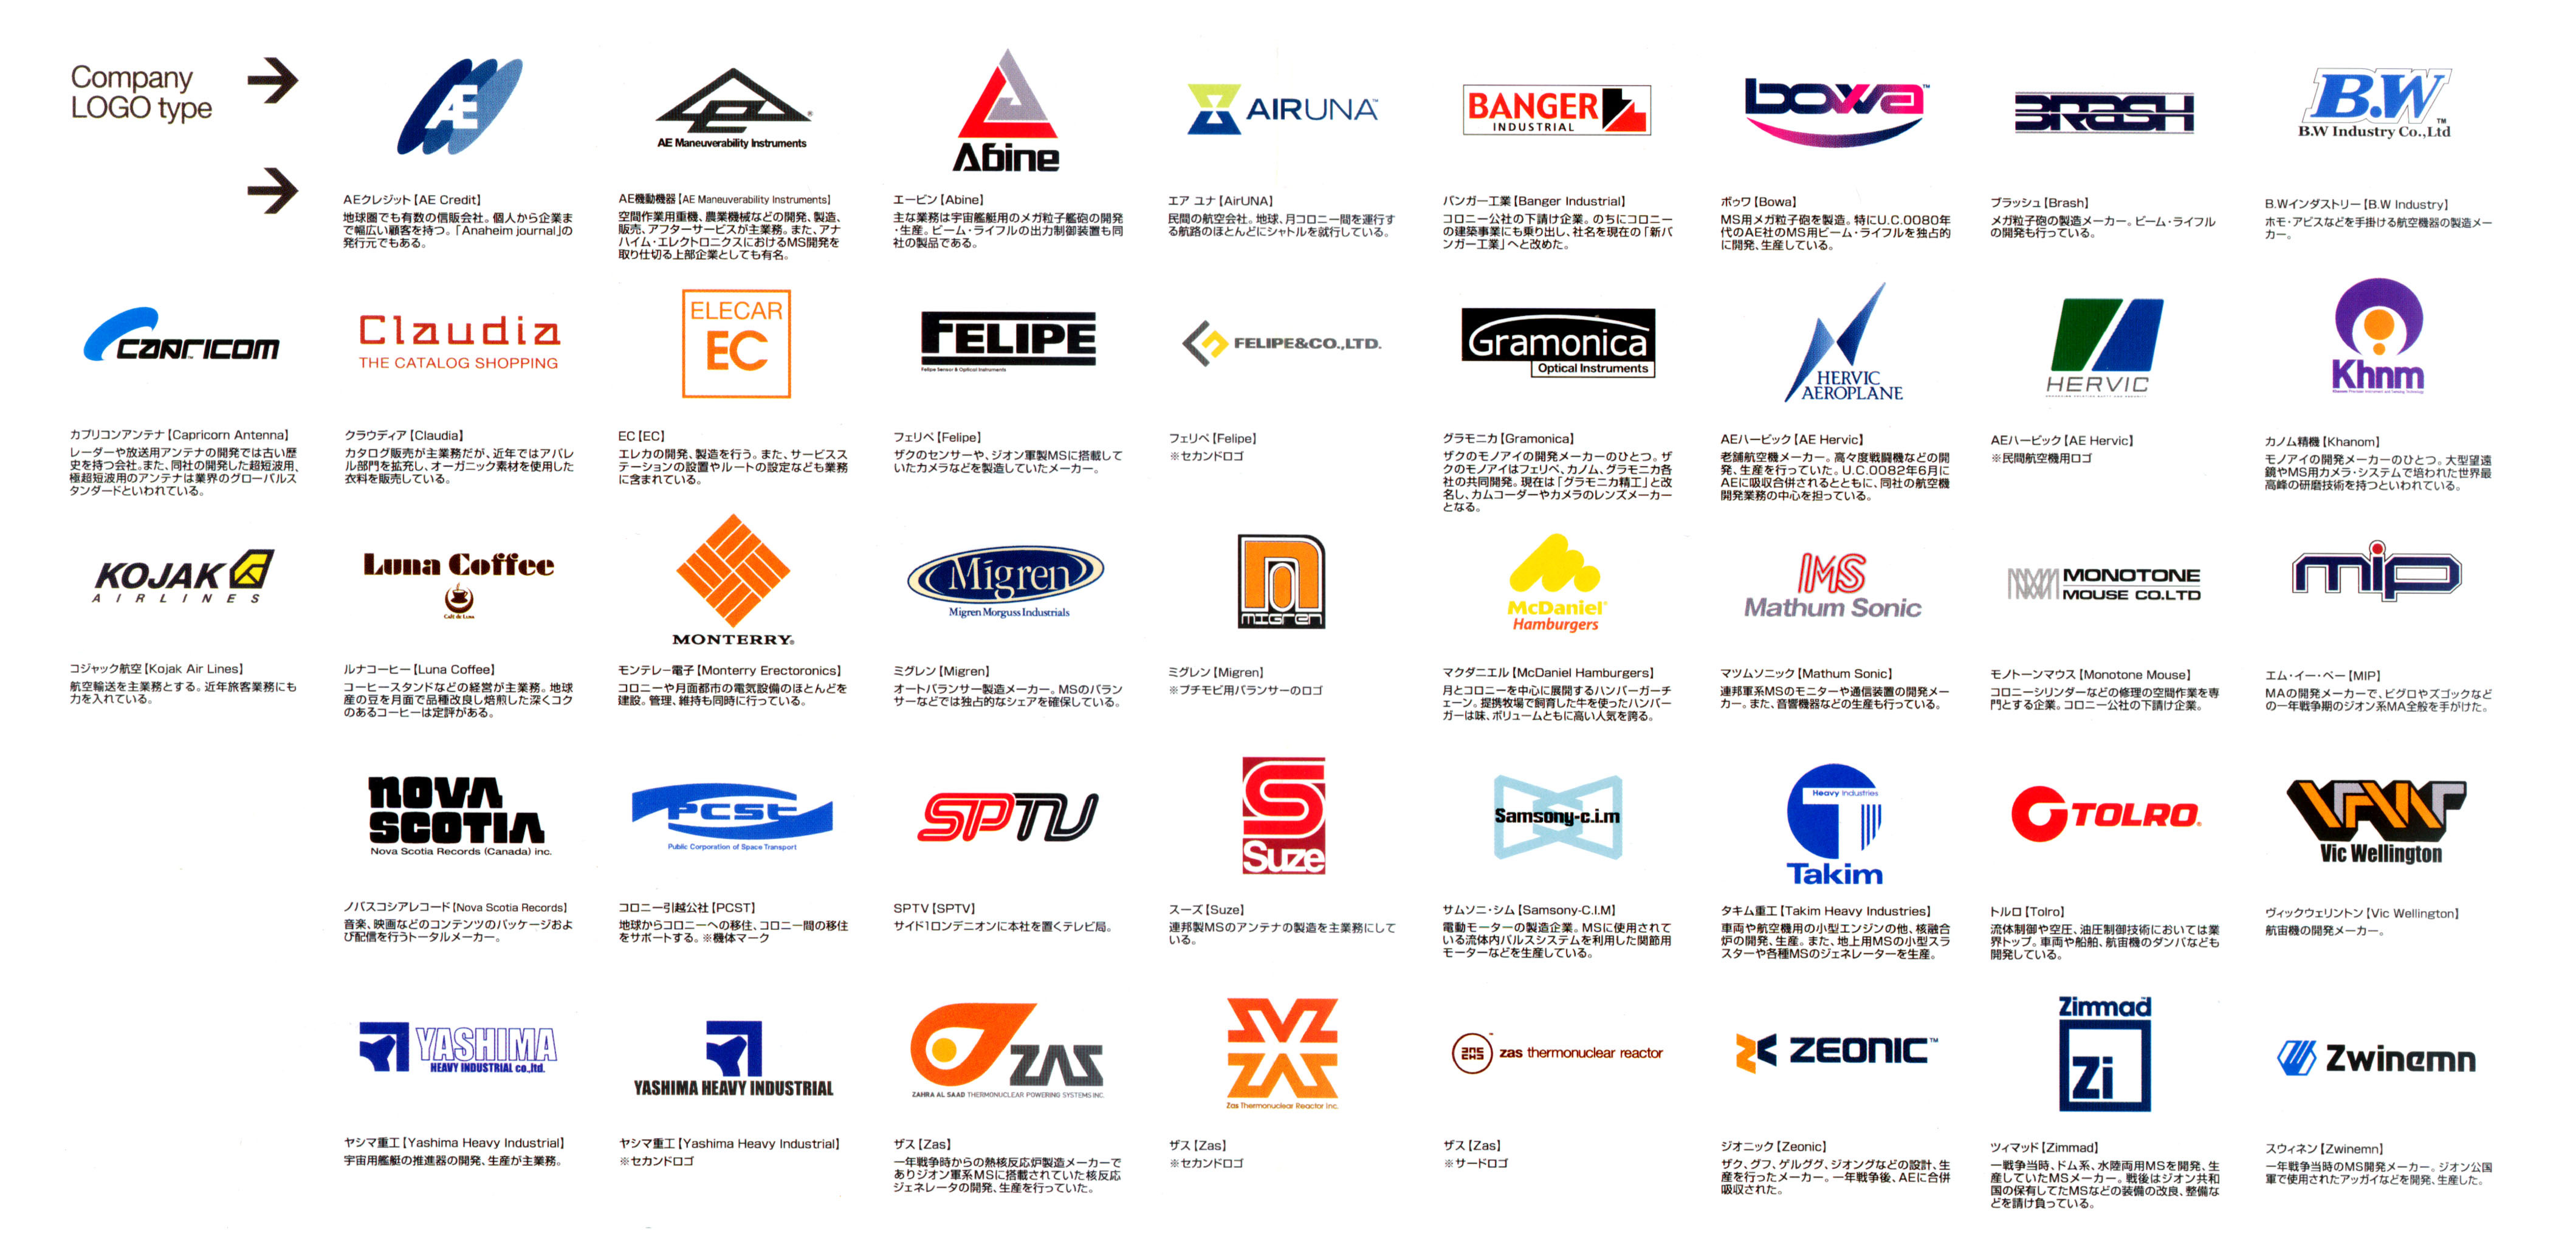 Gundam: Logos of companies in various Gundam series